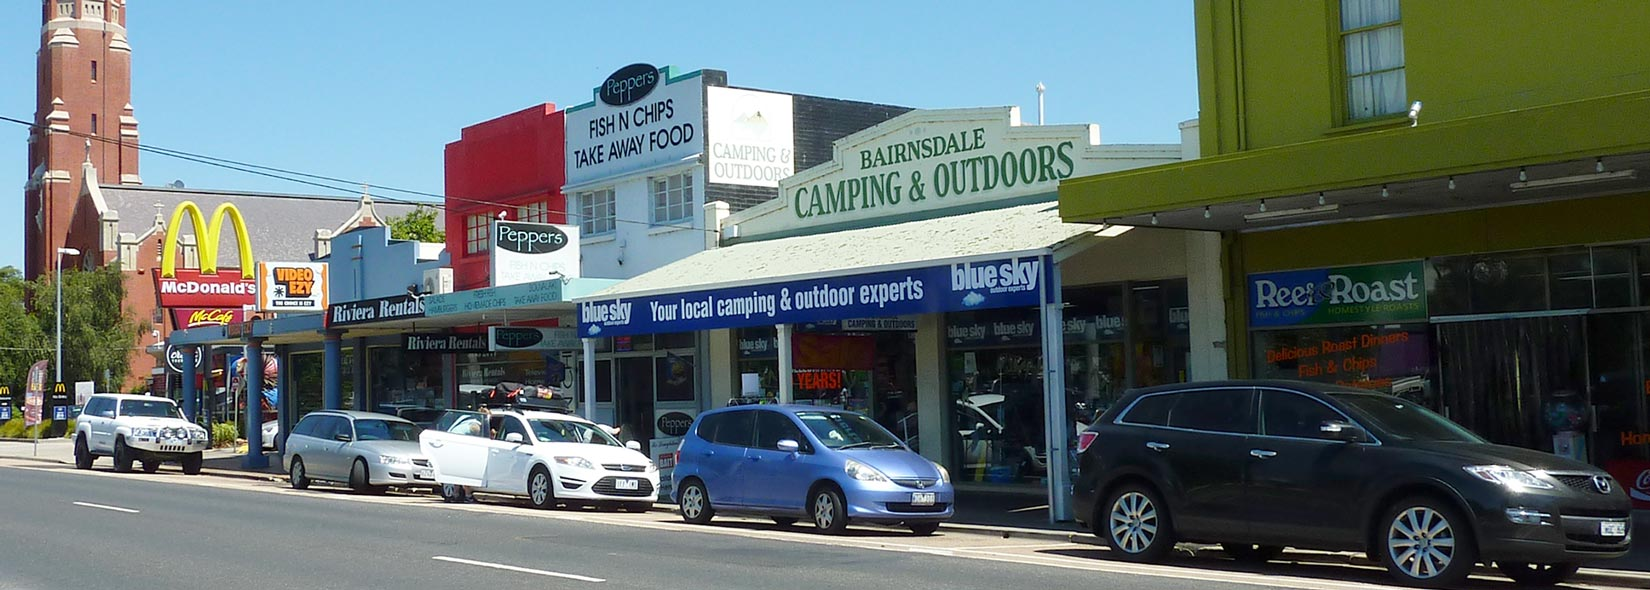 Bairnsdale Camping and Outdoors, 220 Main Street, Bairnsdale